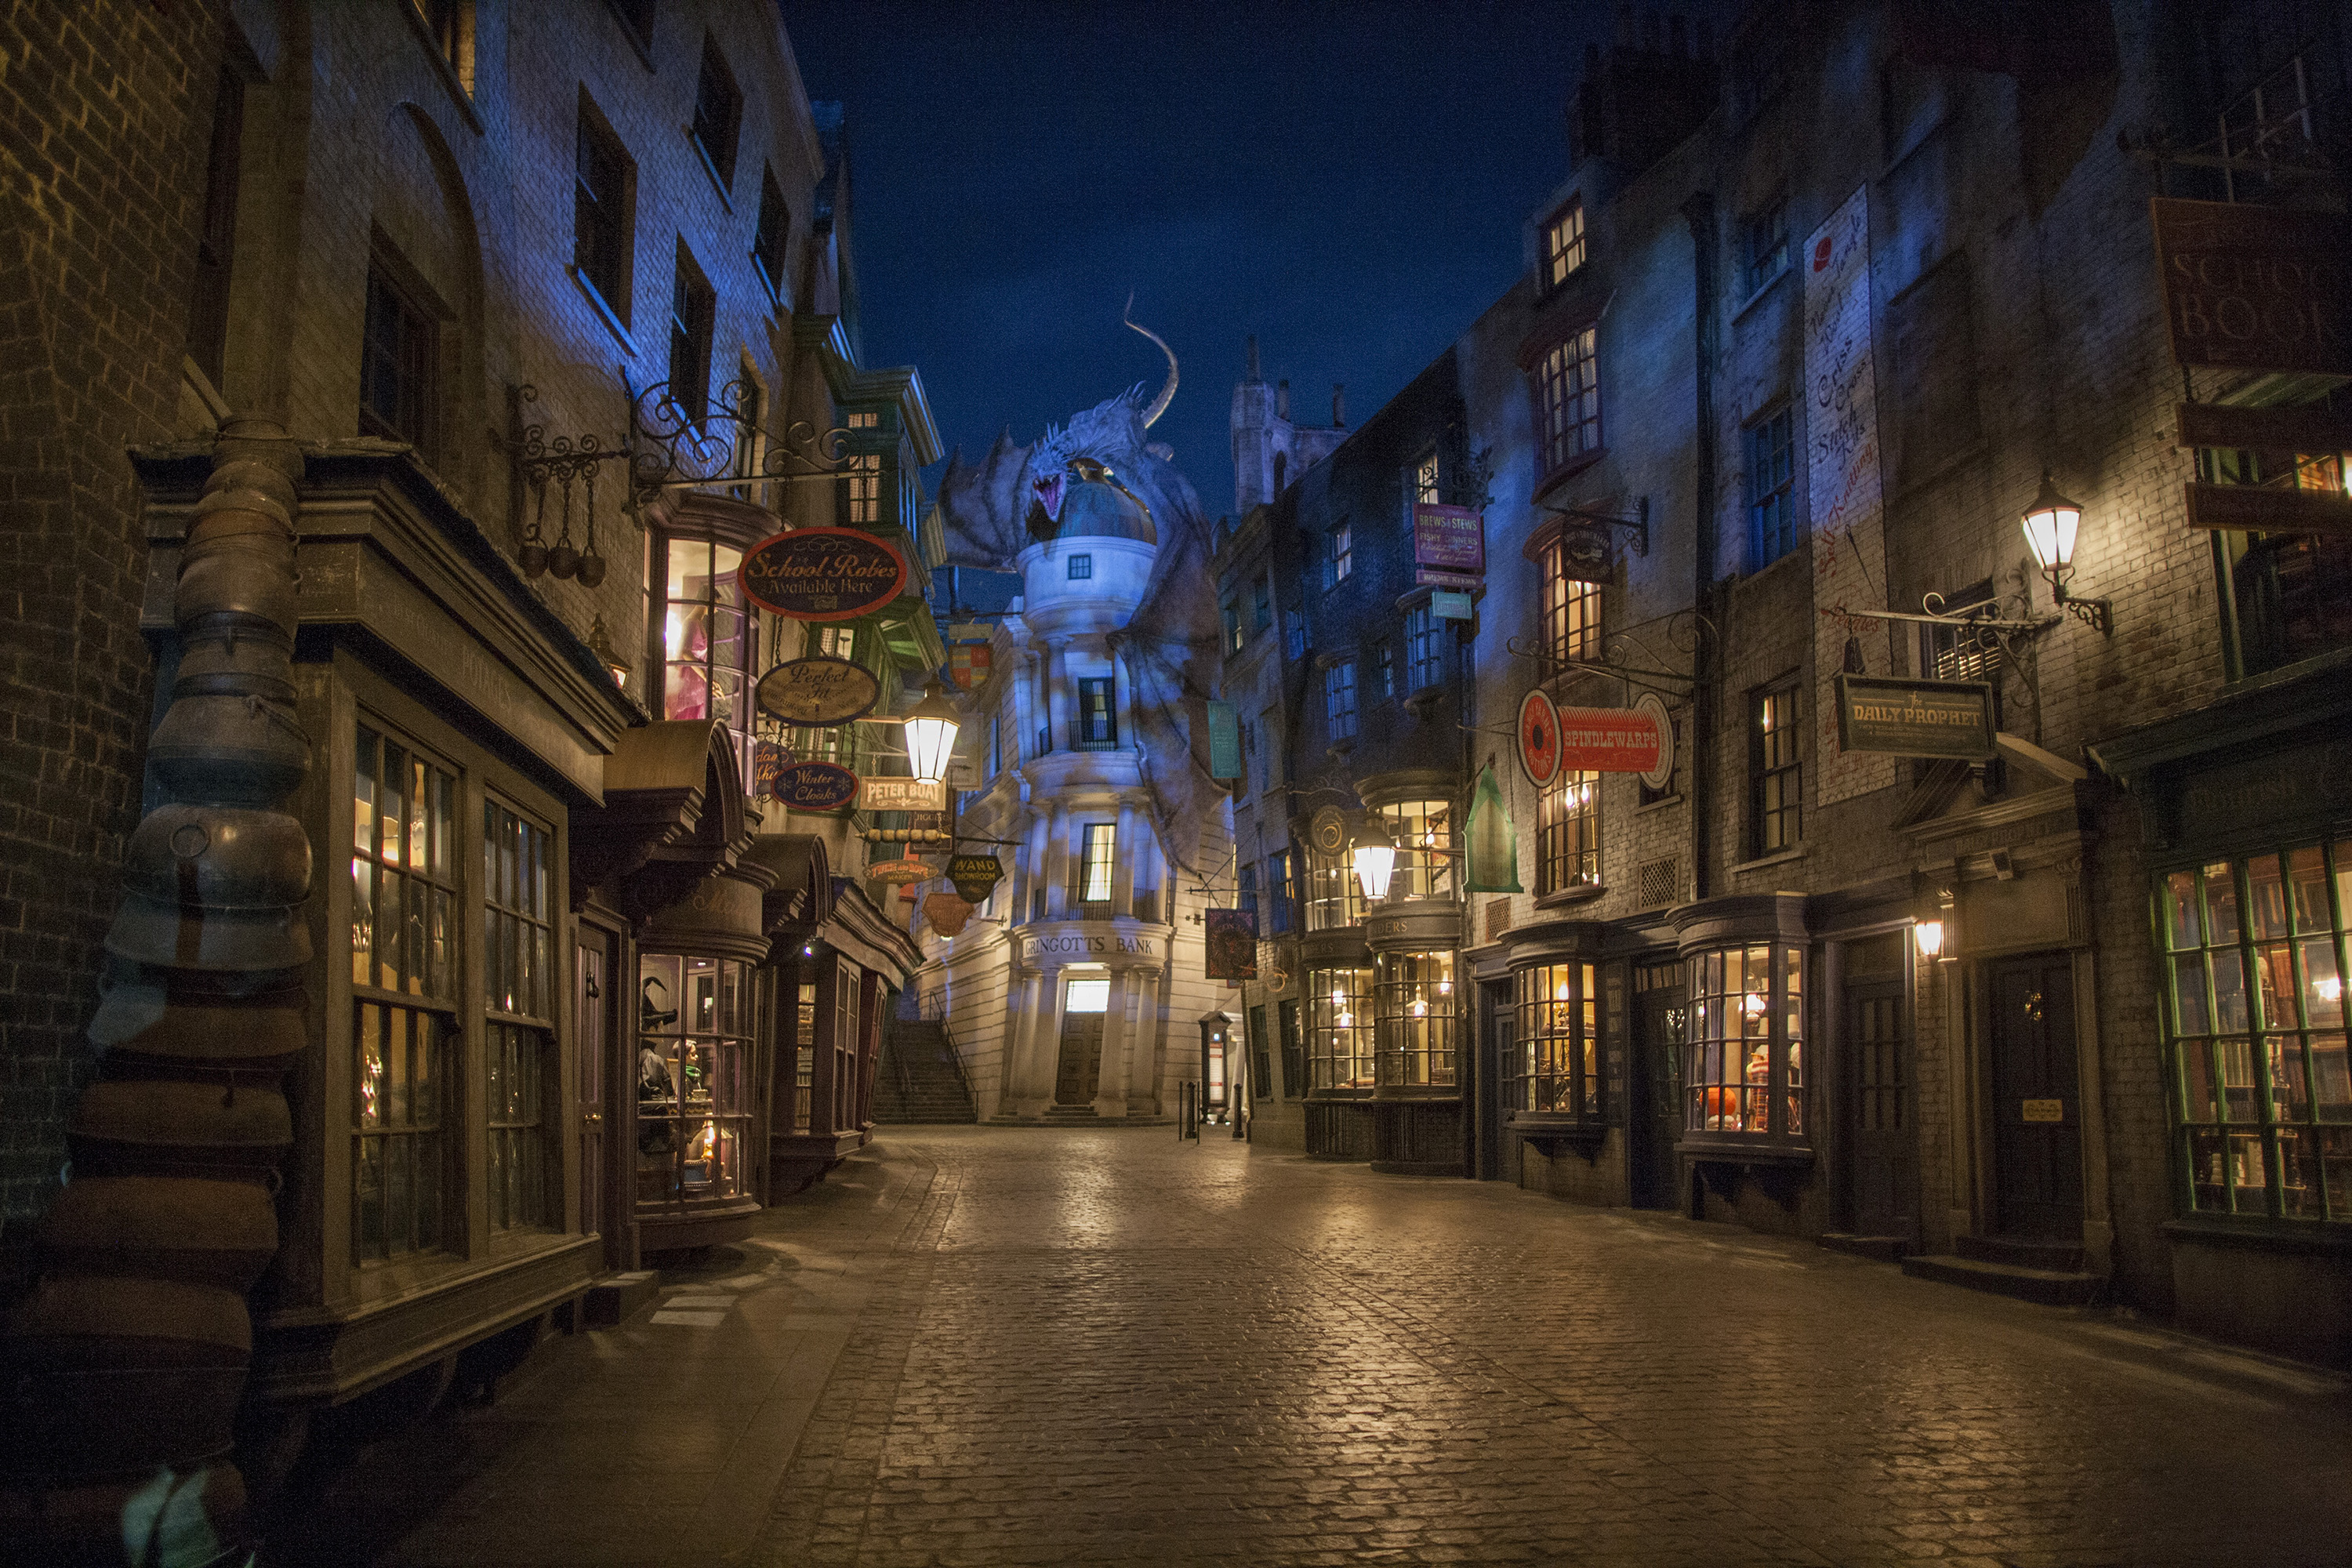 Diagon Alley at The Wizarding World of Harry Potter